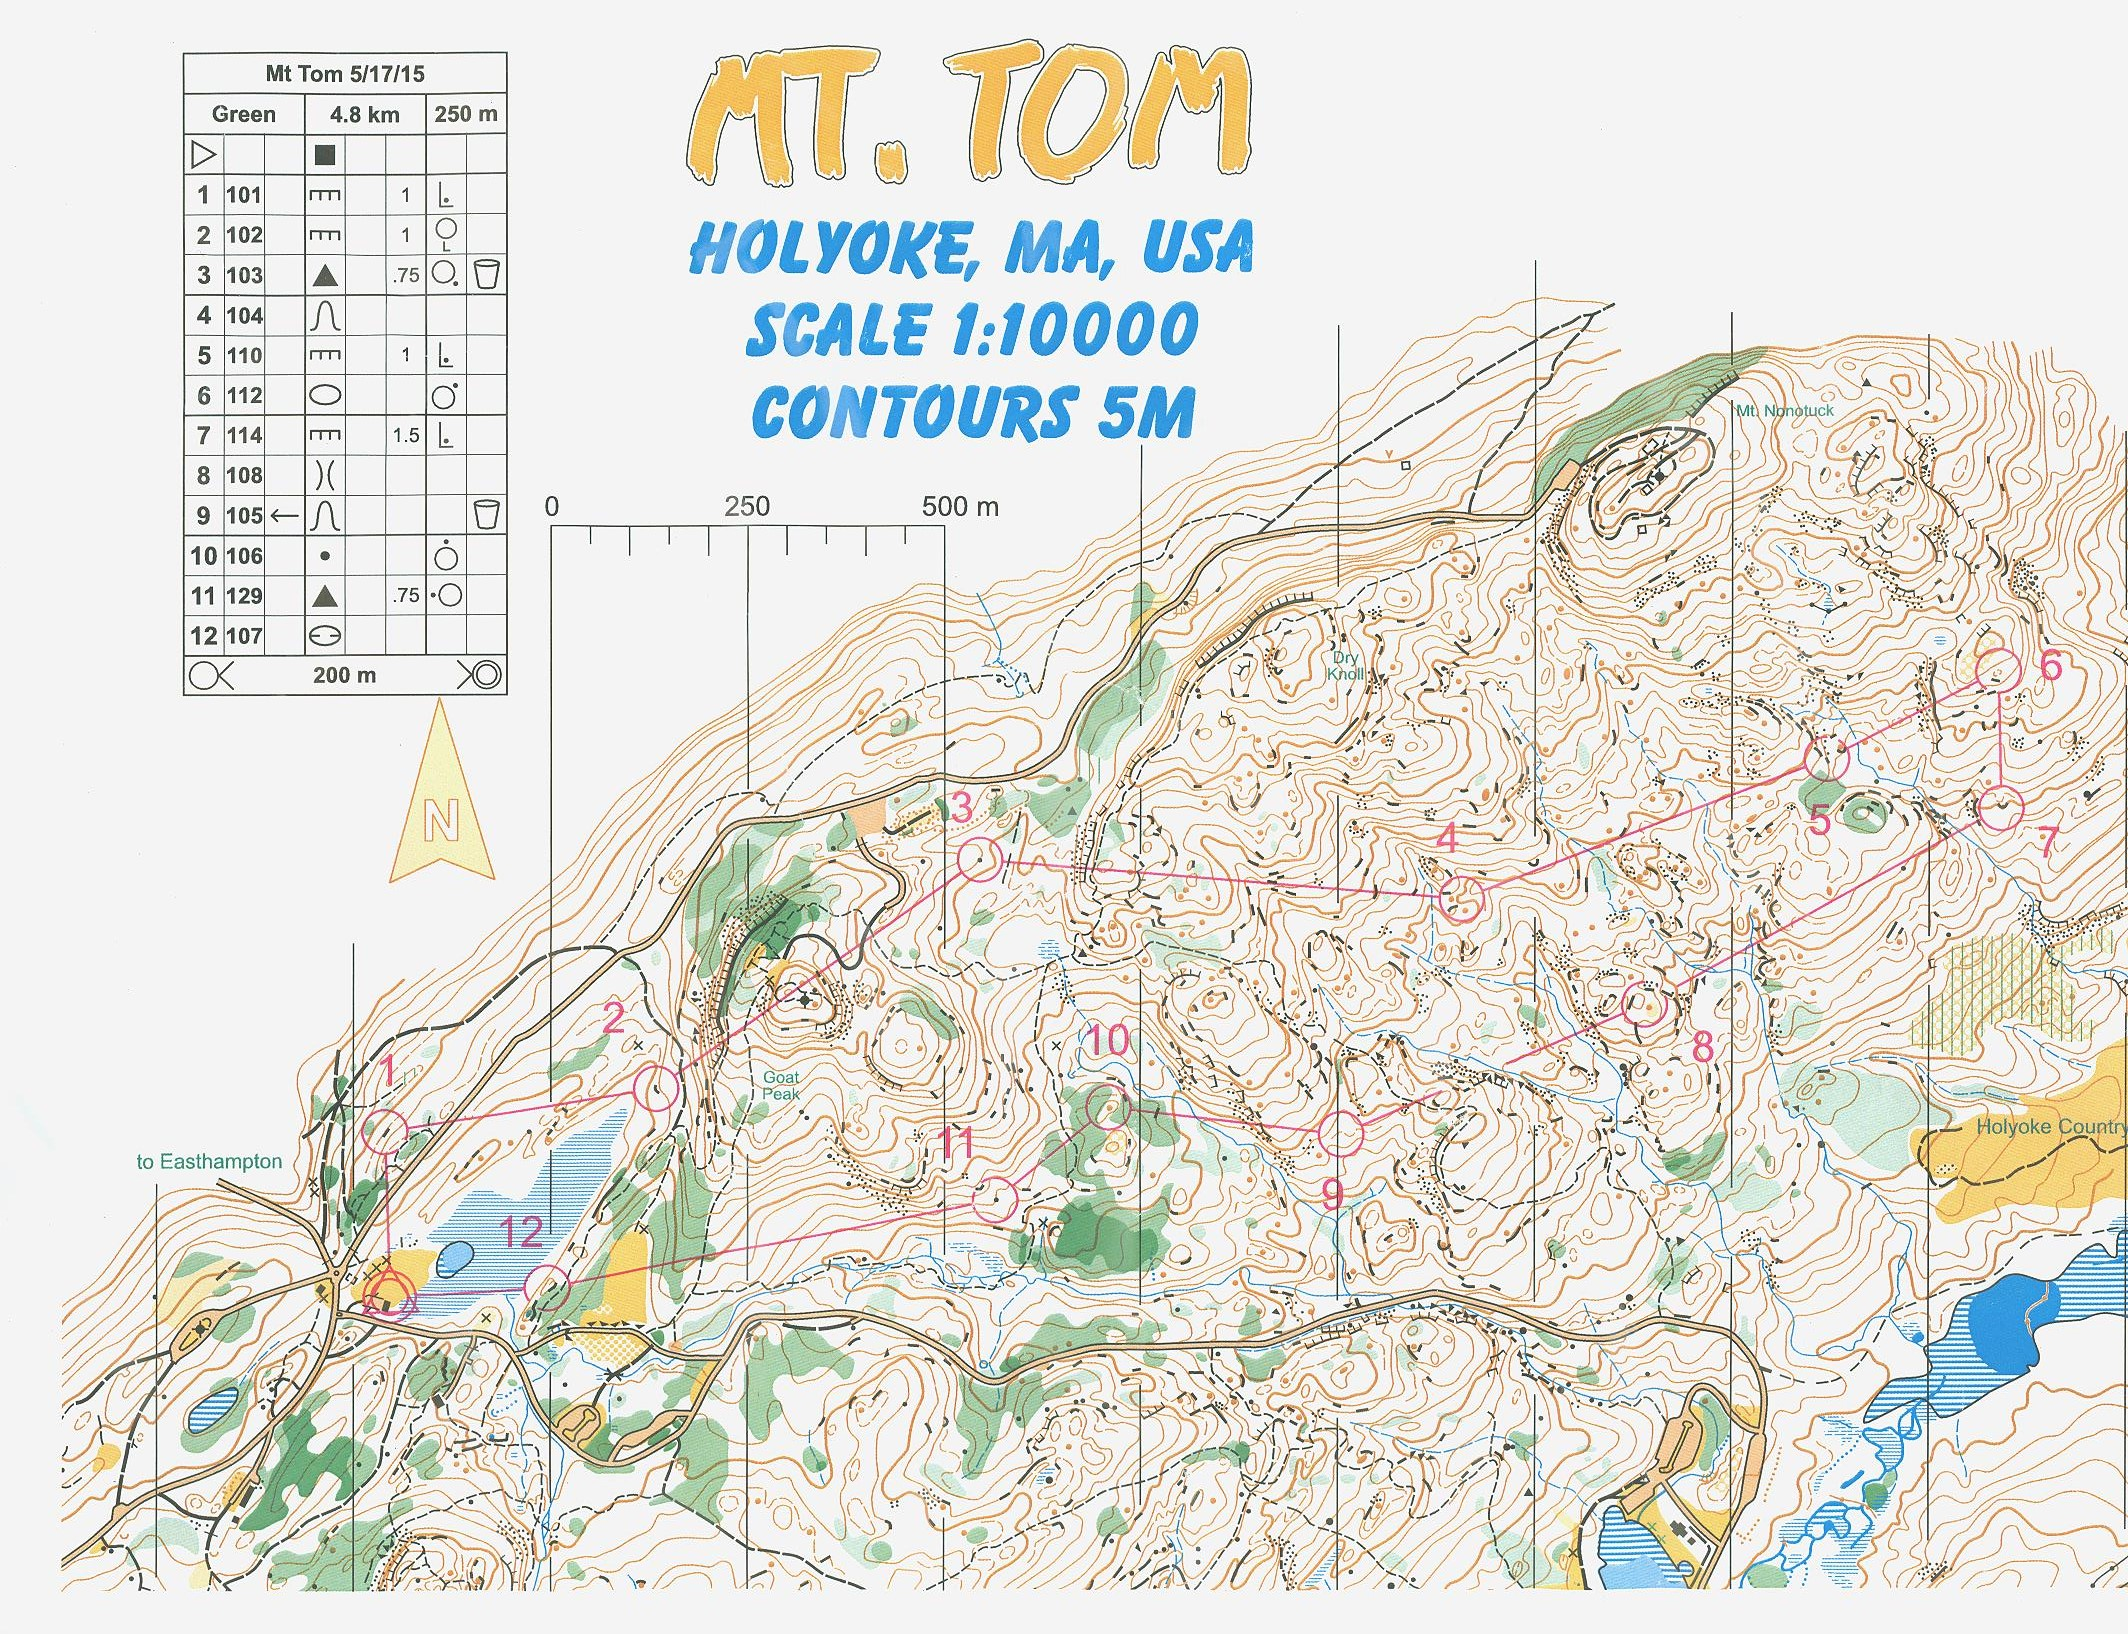 Mt Tom Green course (18/05/2015)